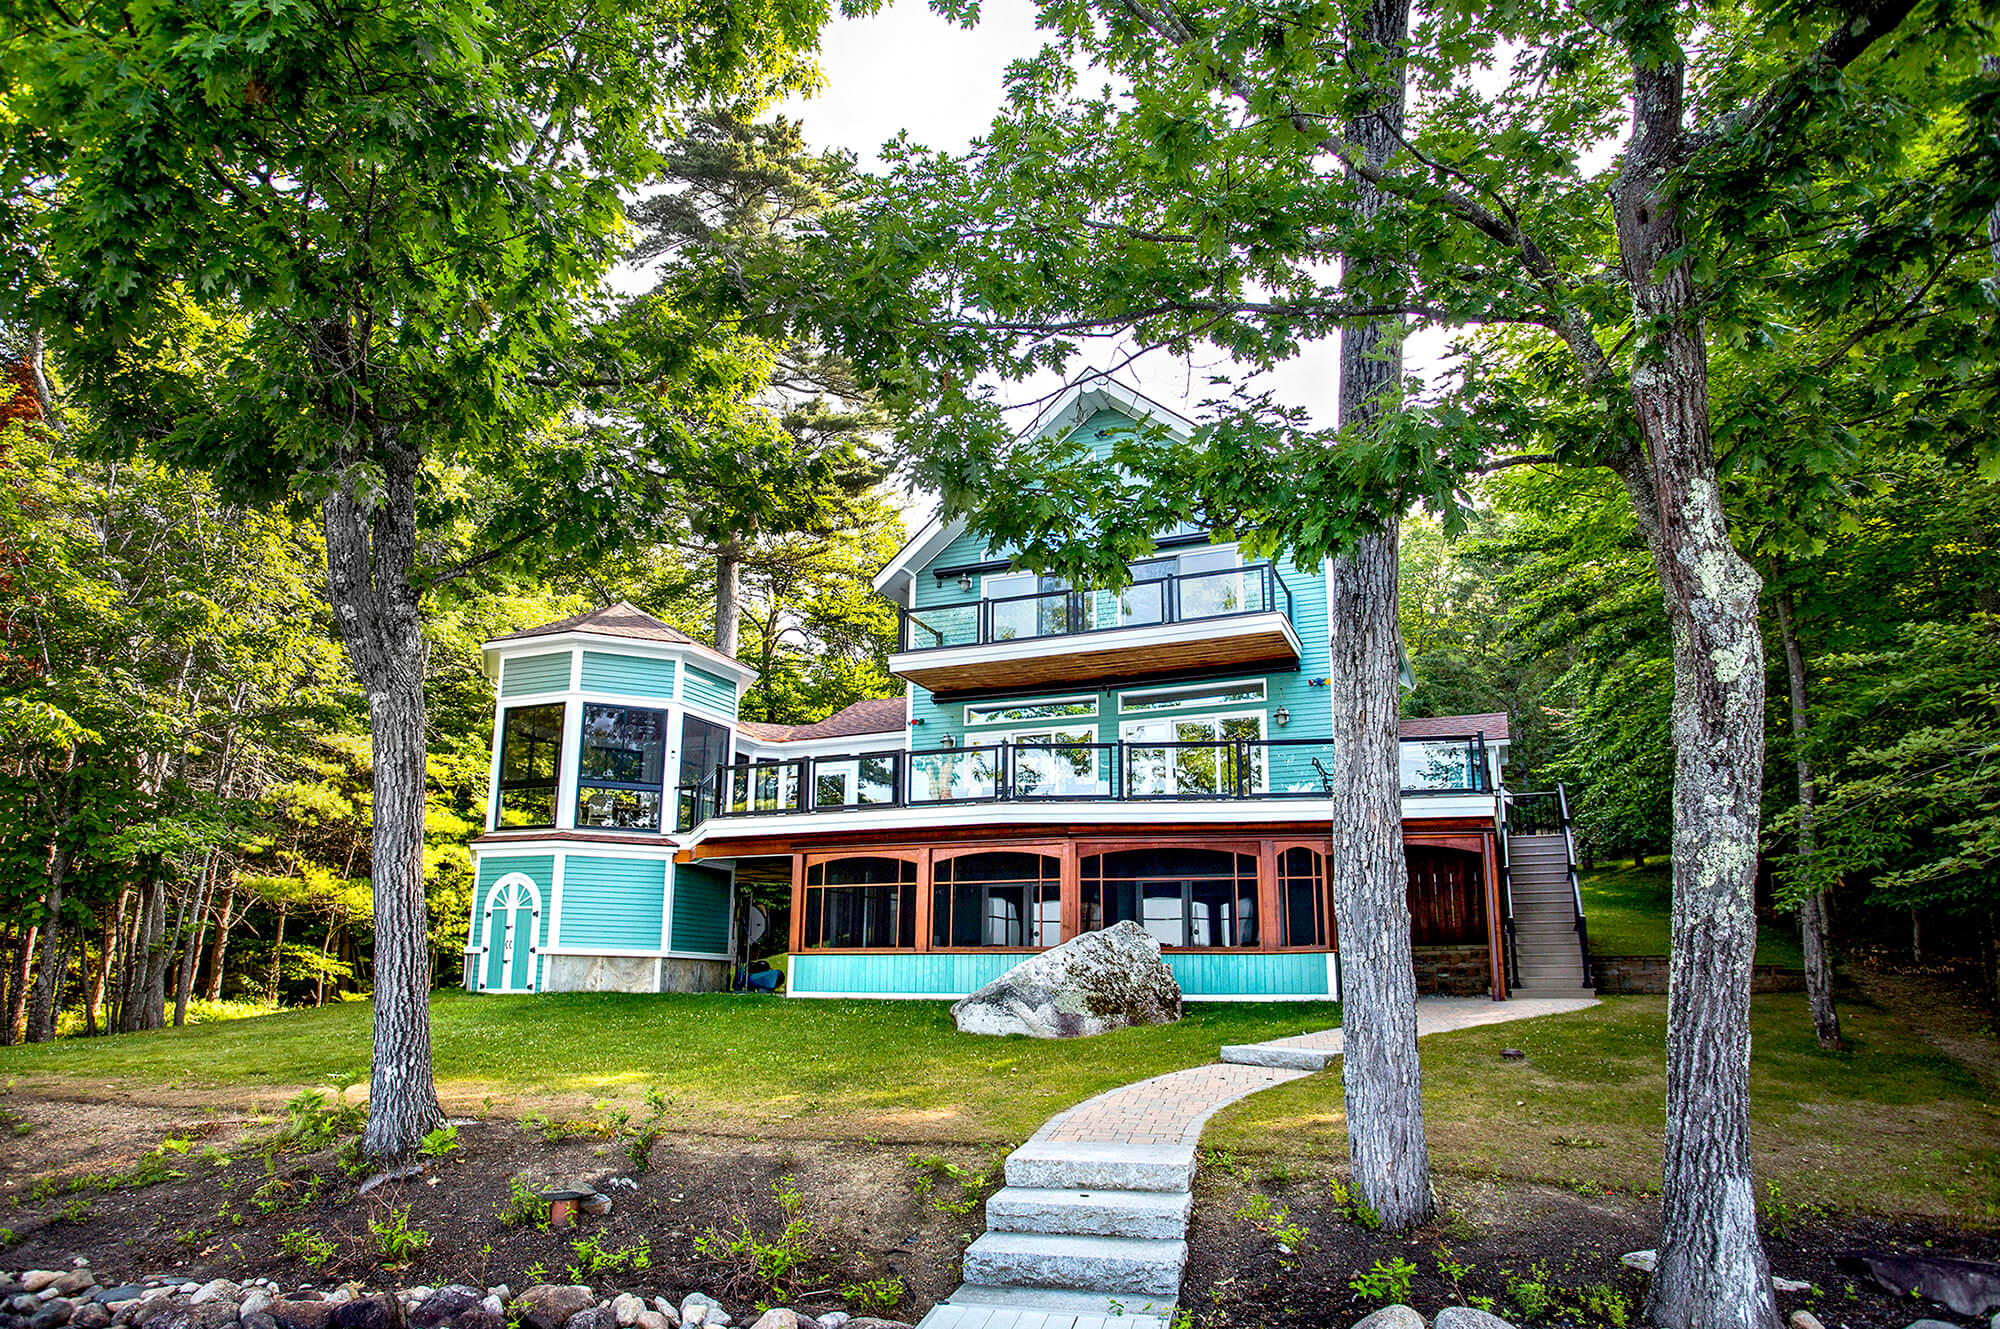 Architectural Photography, exterior view of a lake front home in rural Maine